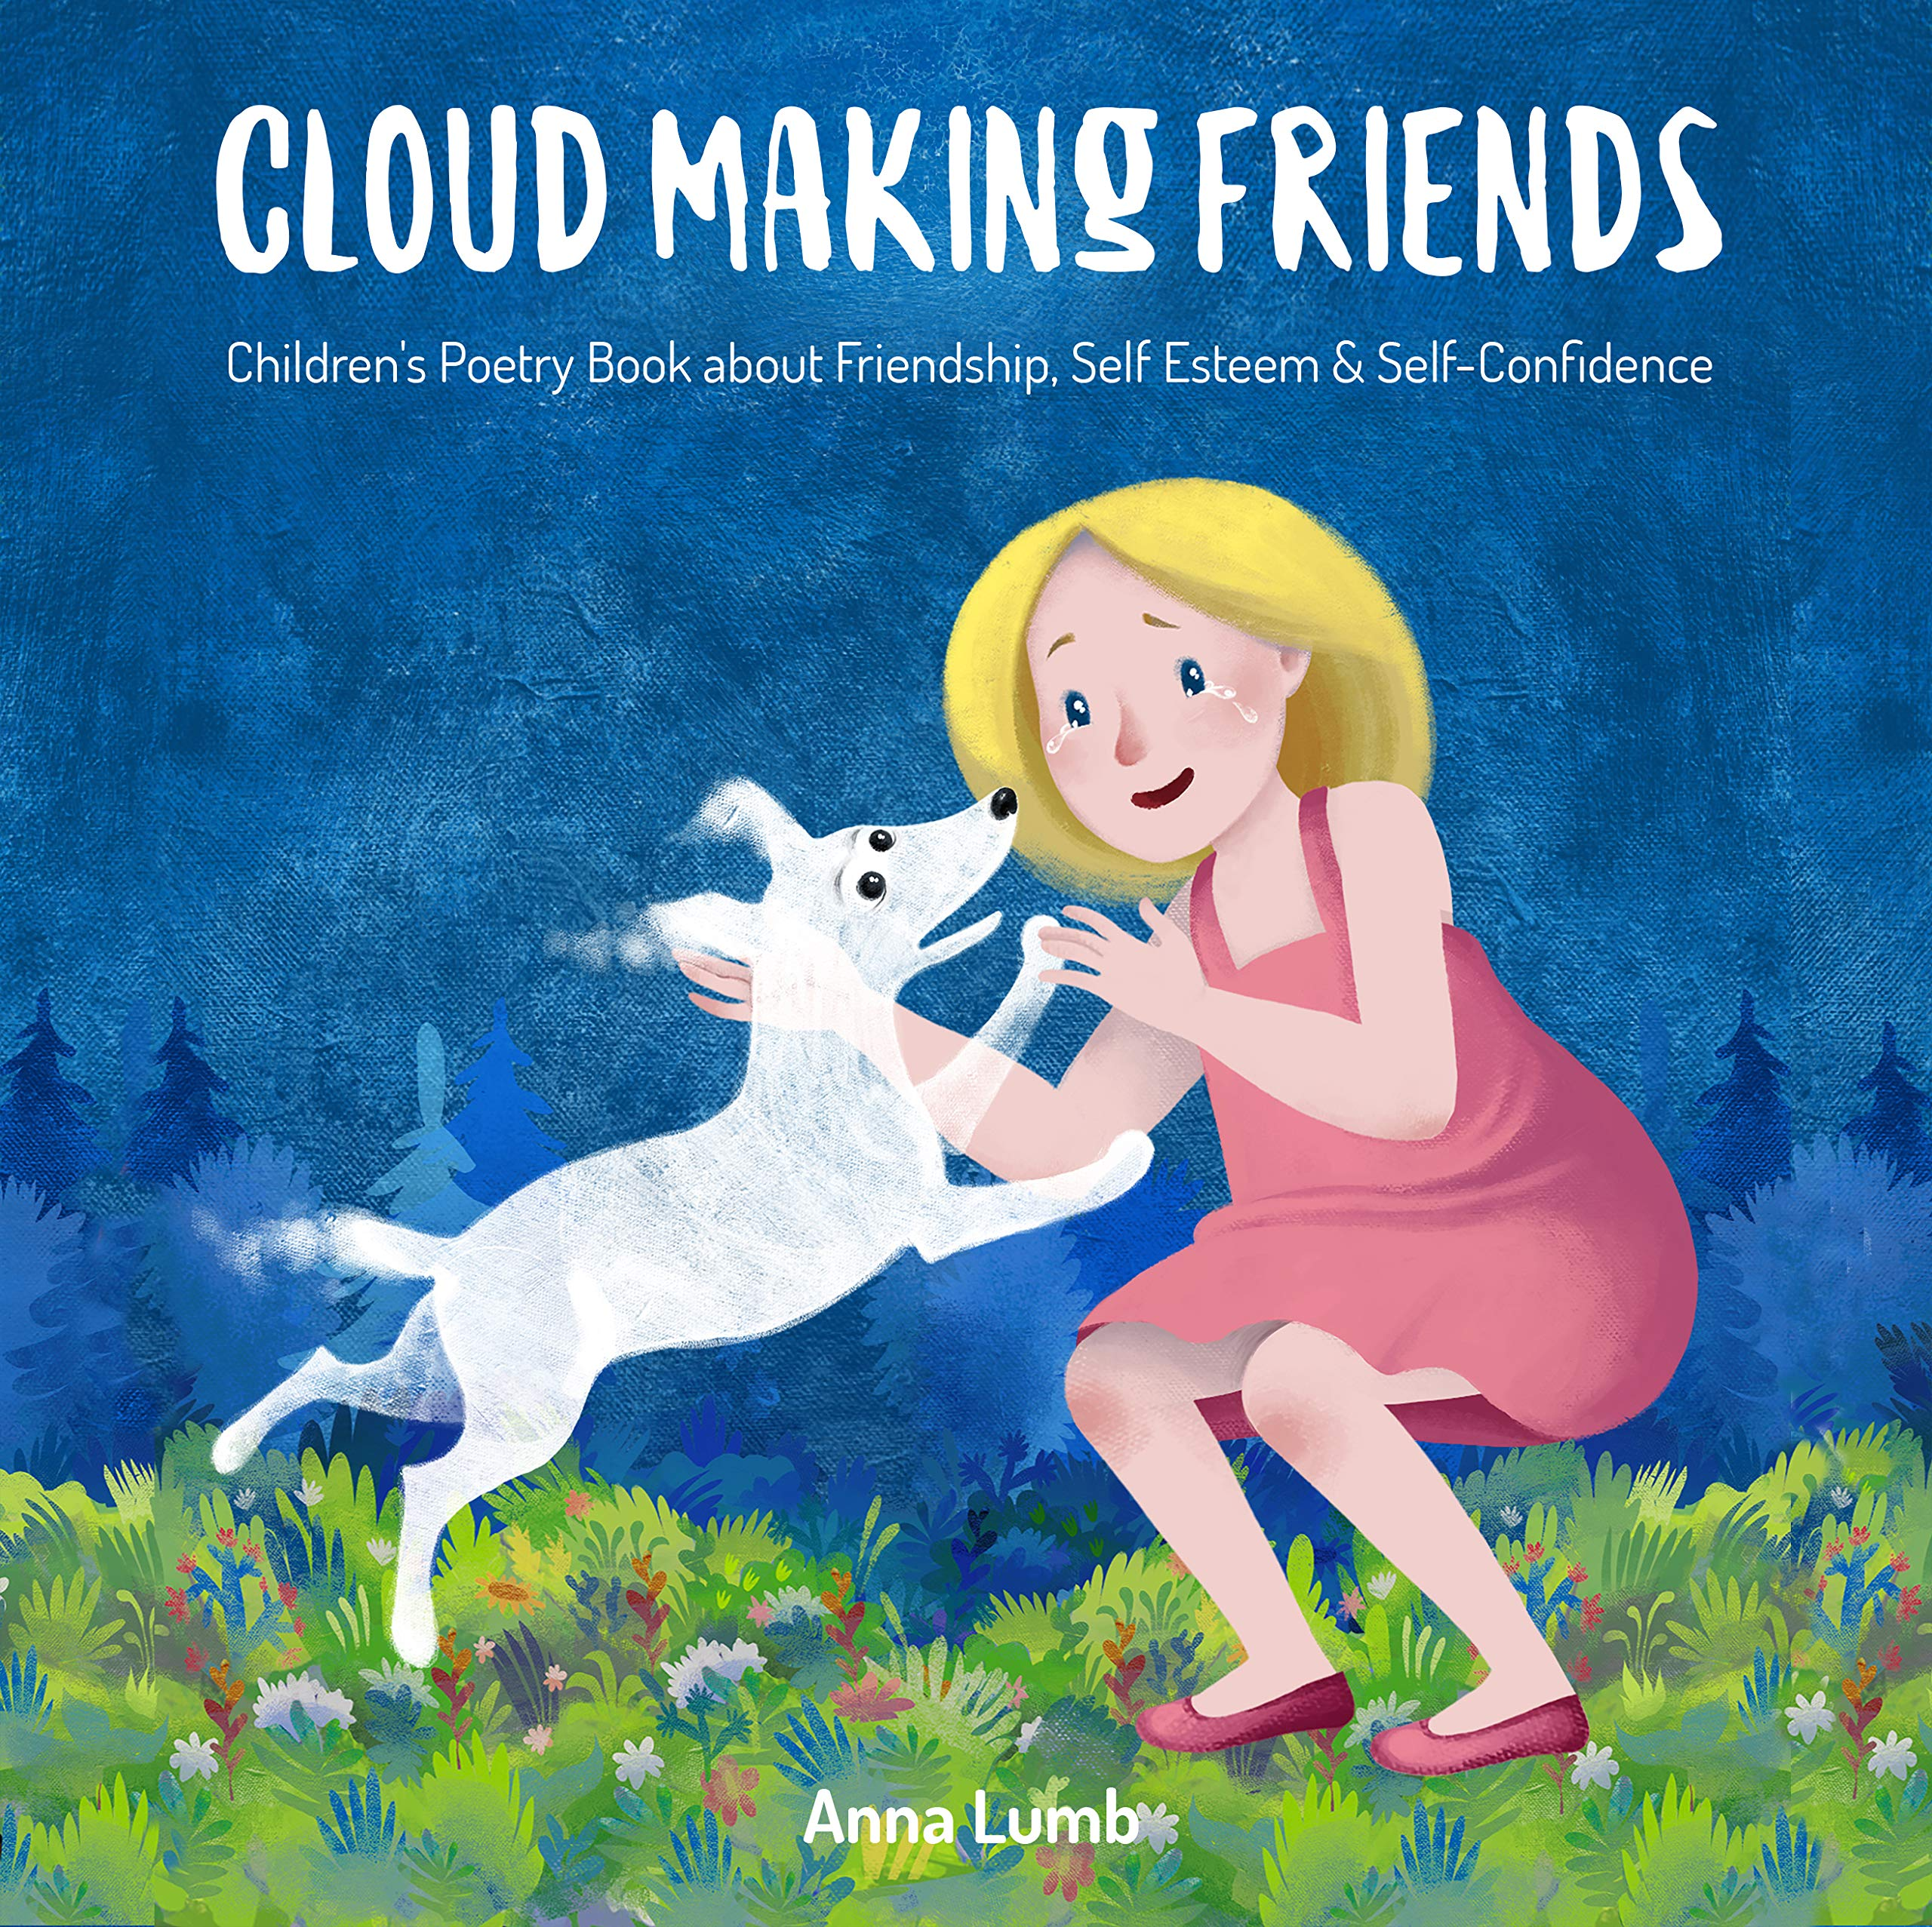 Cloud Making Friends : Children's Poetry Book about Friendship, Self Esteem & Self-Confidence. Short Bedtime Story for Children Ages 3-5. Picture Books for Kids (Social Skills Books for Kids 2)